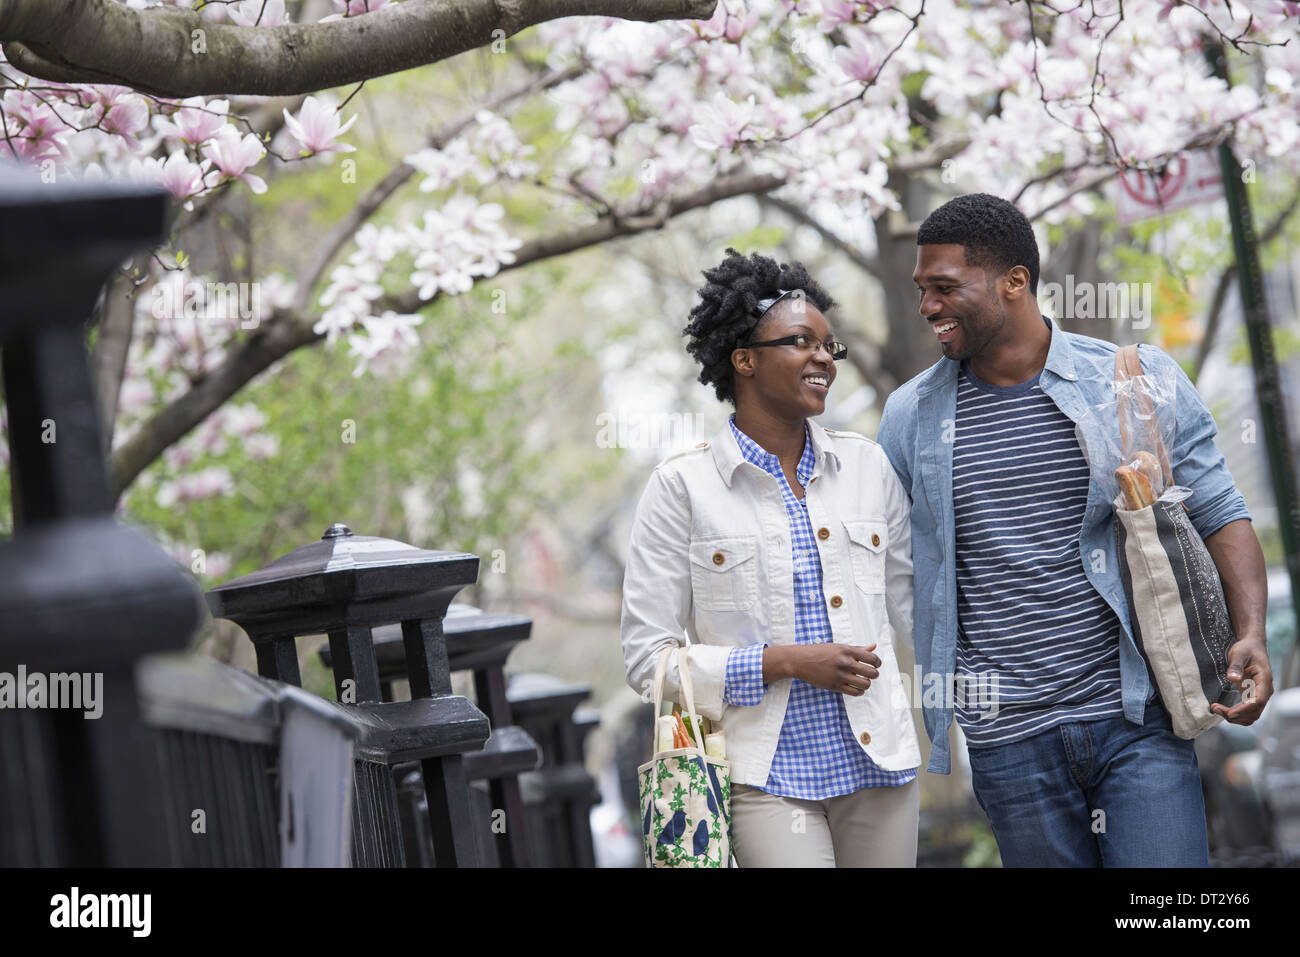 A couple walking in the park side by side carrying shopping bags - Stock Image